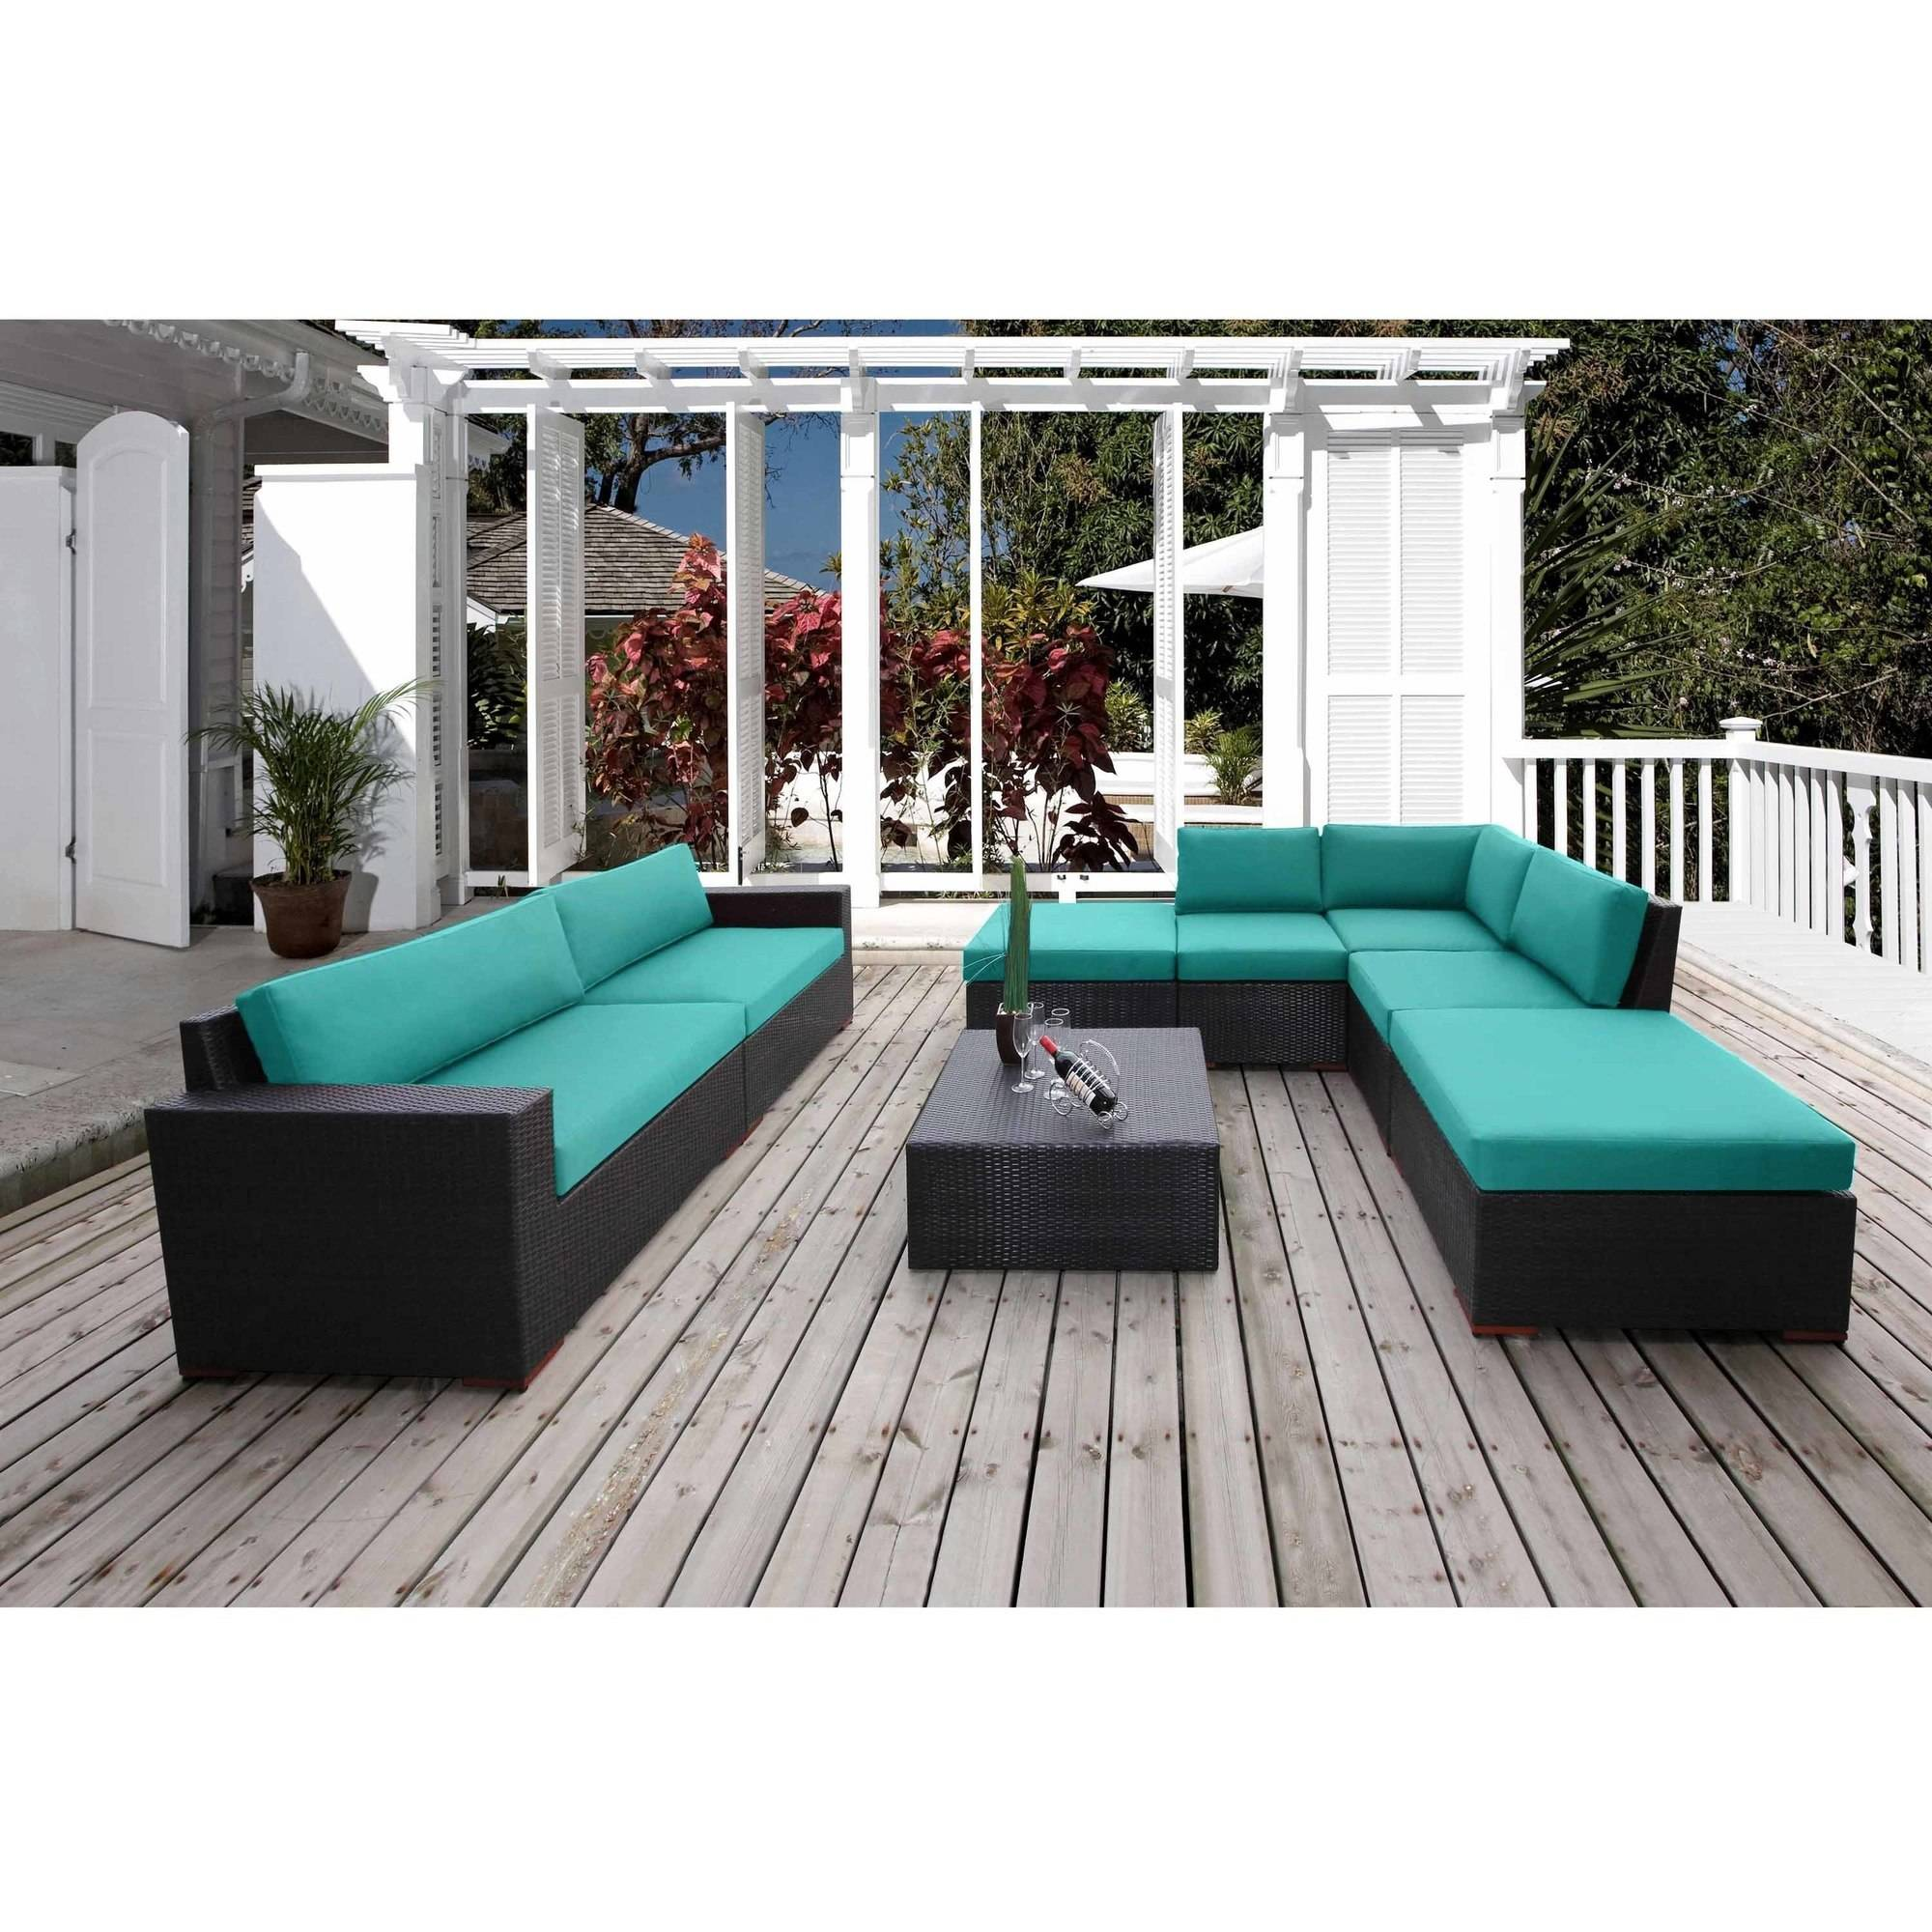 Nevis 8-Piece Sectional Seating Set